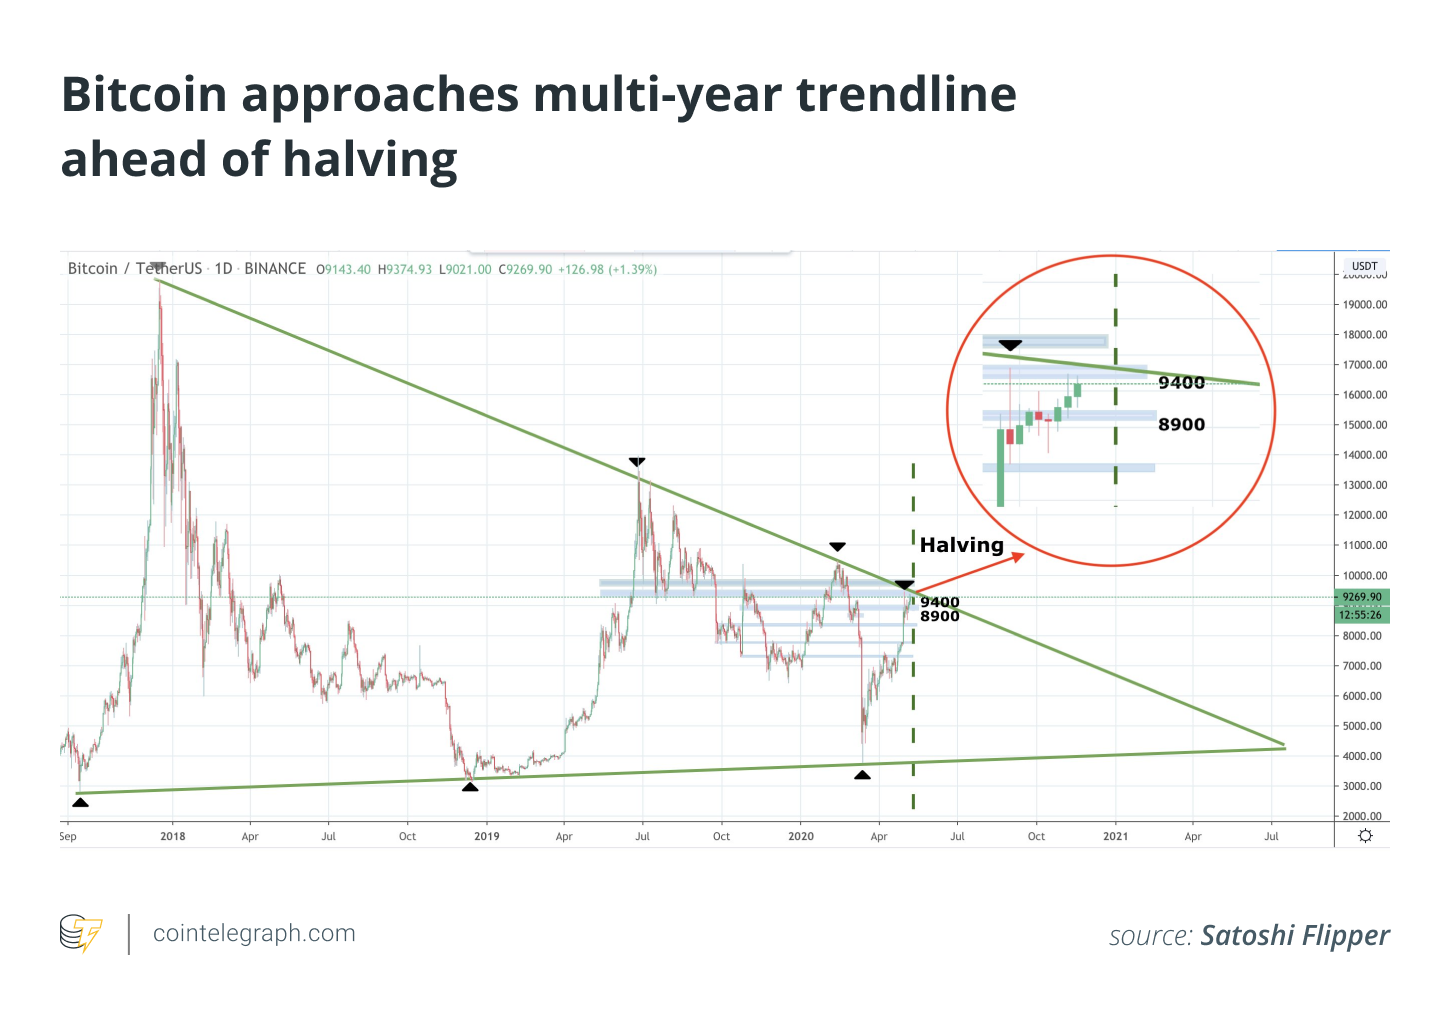 Bitcoin approaches multi year trendline ahead of halving